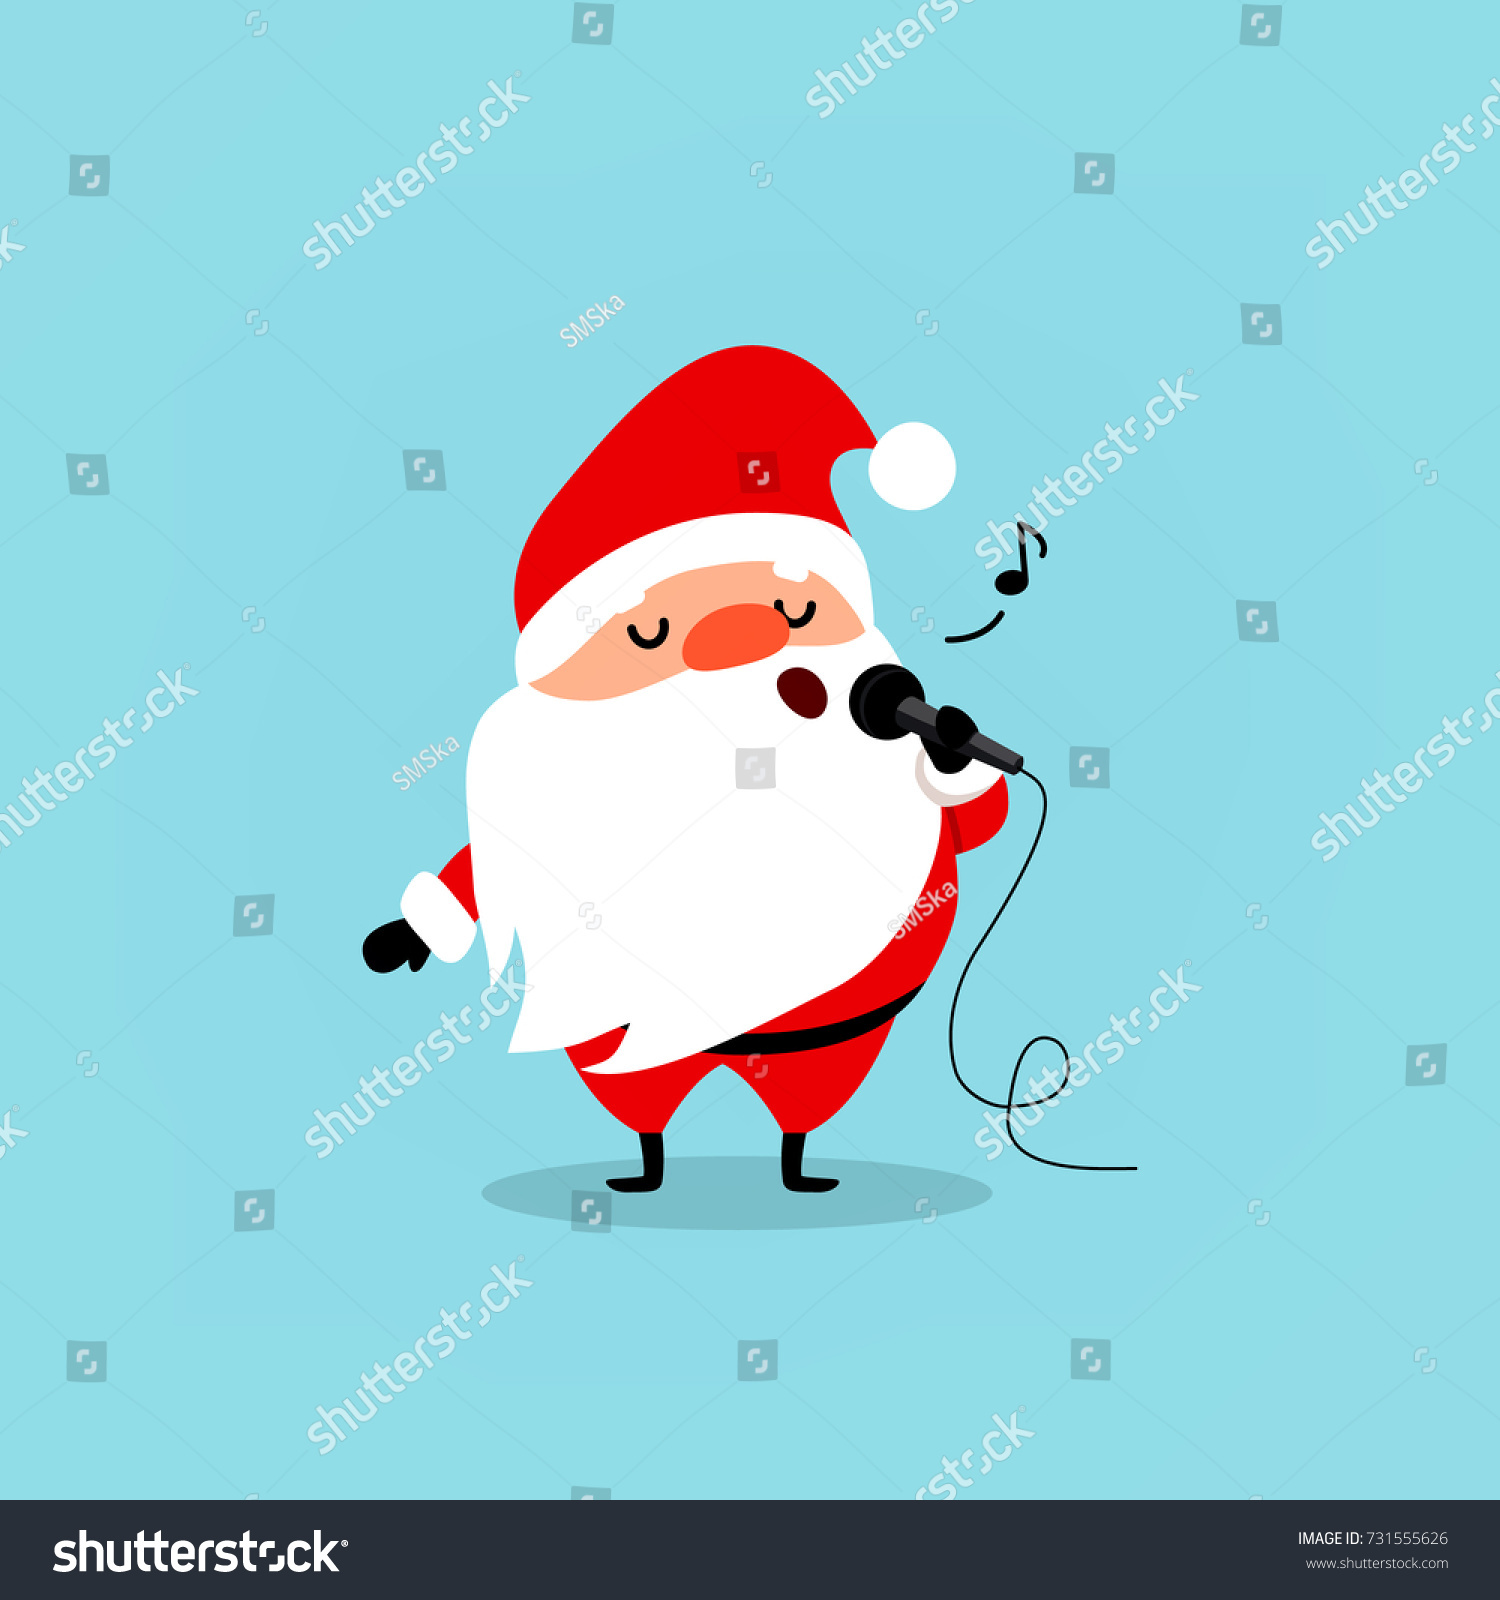 santa claus with a microphone sings karaoke a funny christmas character element from the - Blue Christmas Karaoke